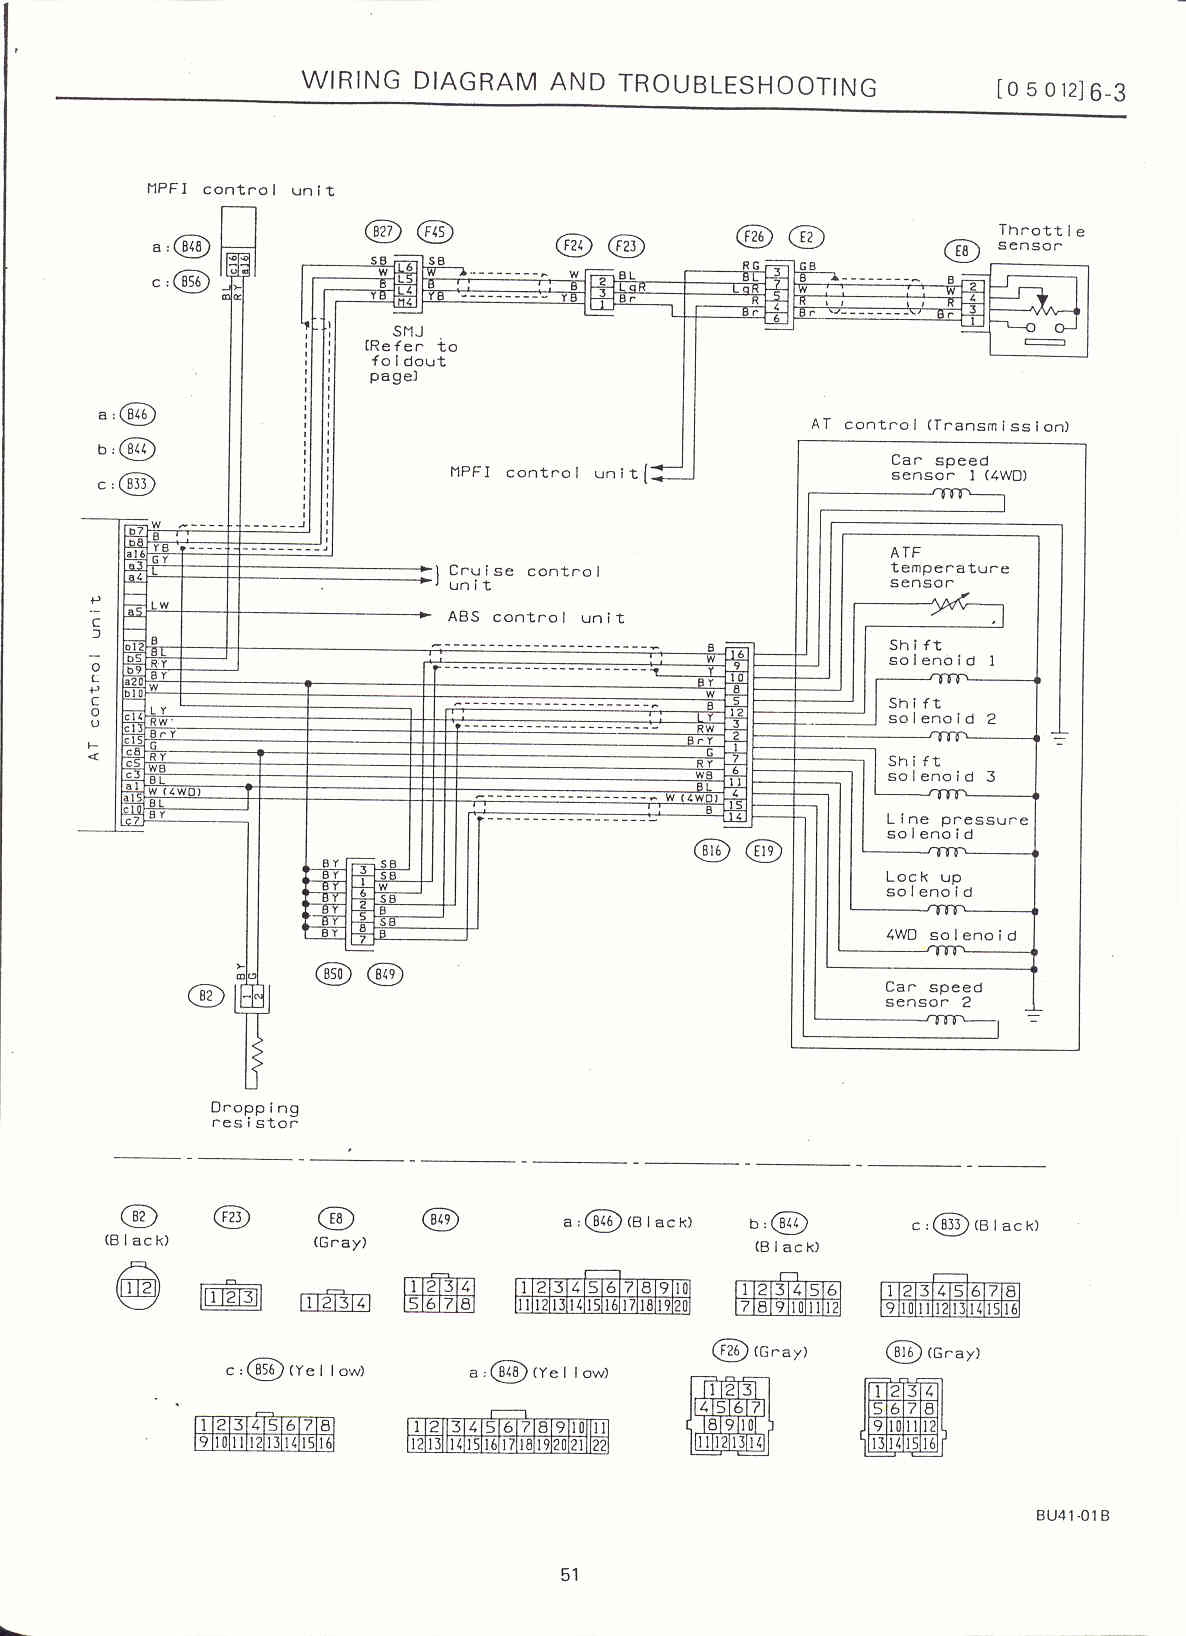 Surrealmirage Subaru Legacy Swap Electrical Info Notes 1990 Engine Diagram At Control Page 2